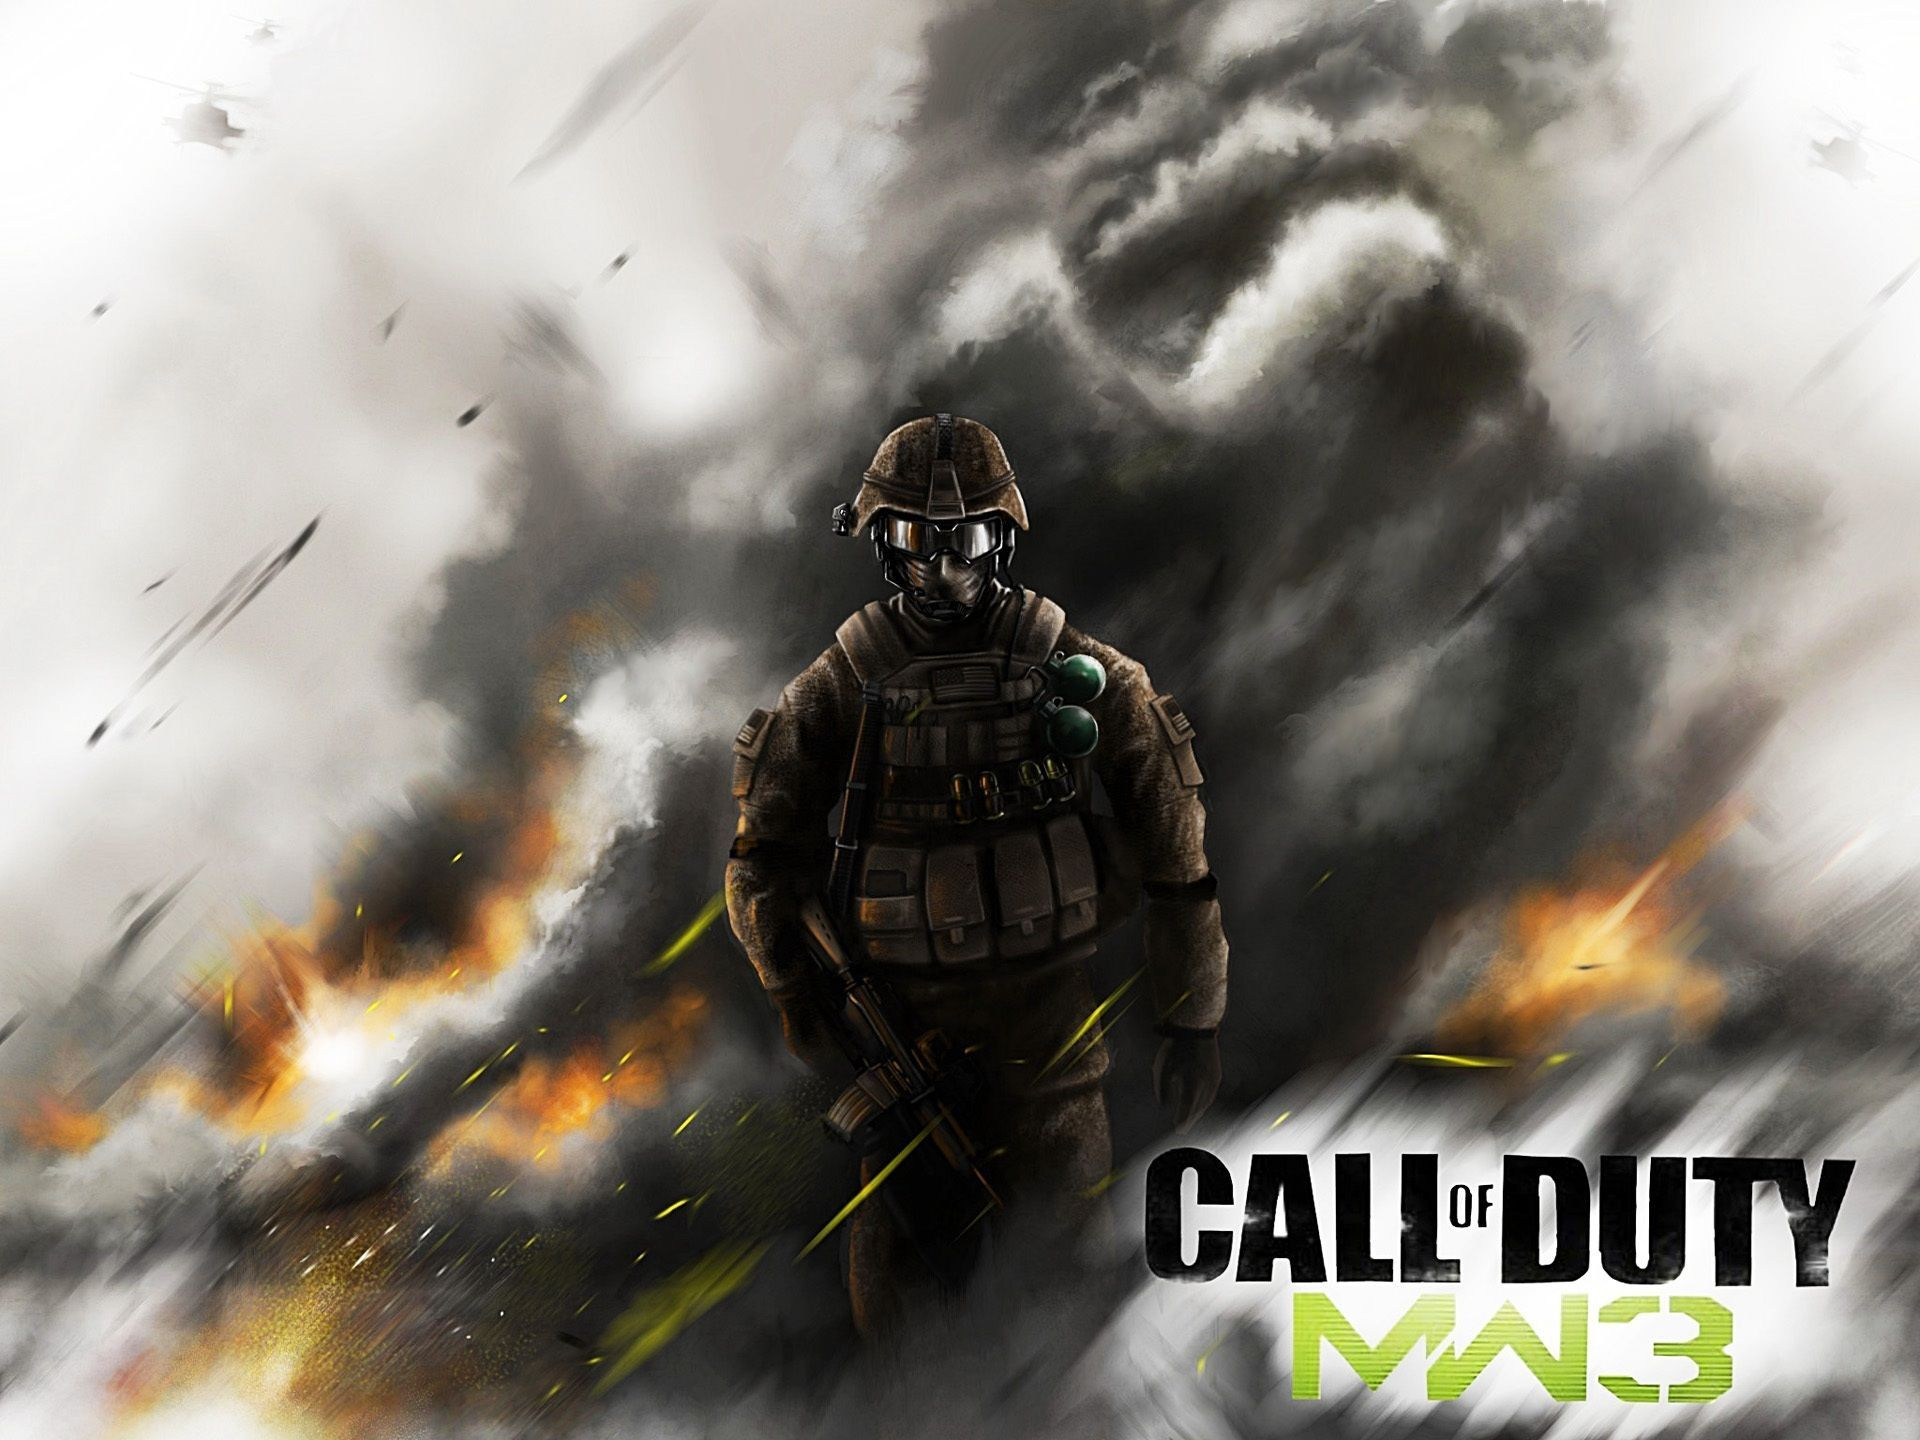 Call Of Duty Modern Warfare Wallpaper For PC Full HD Pictures